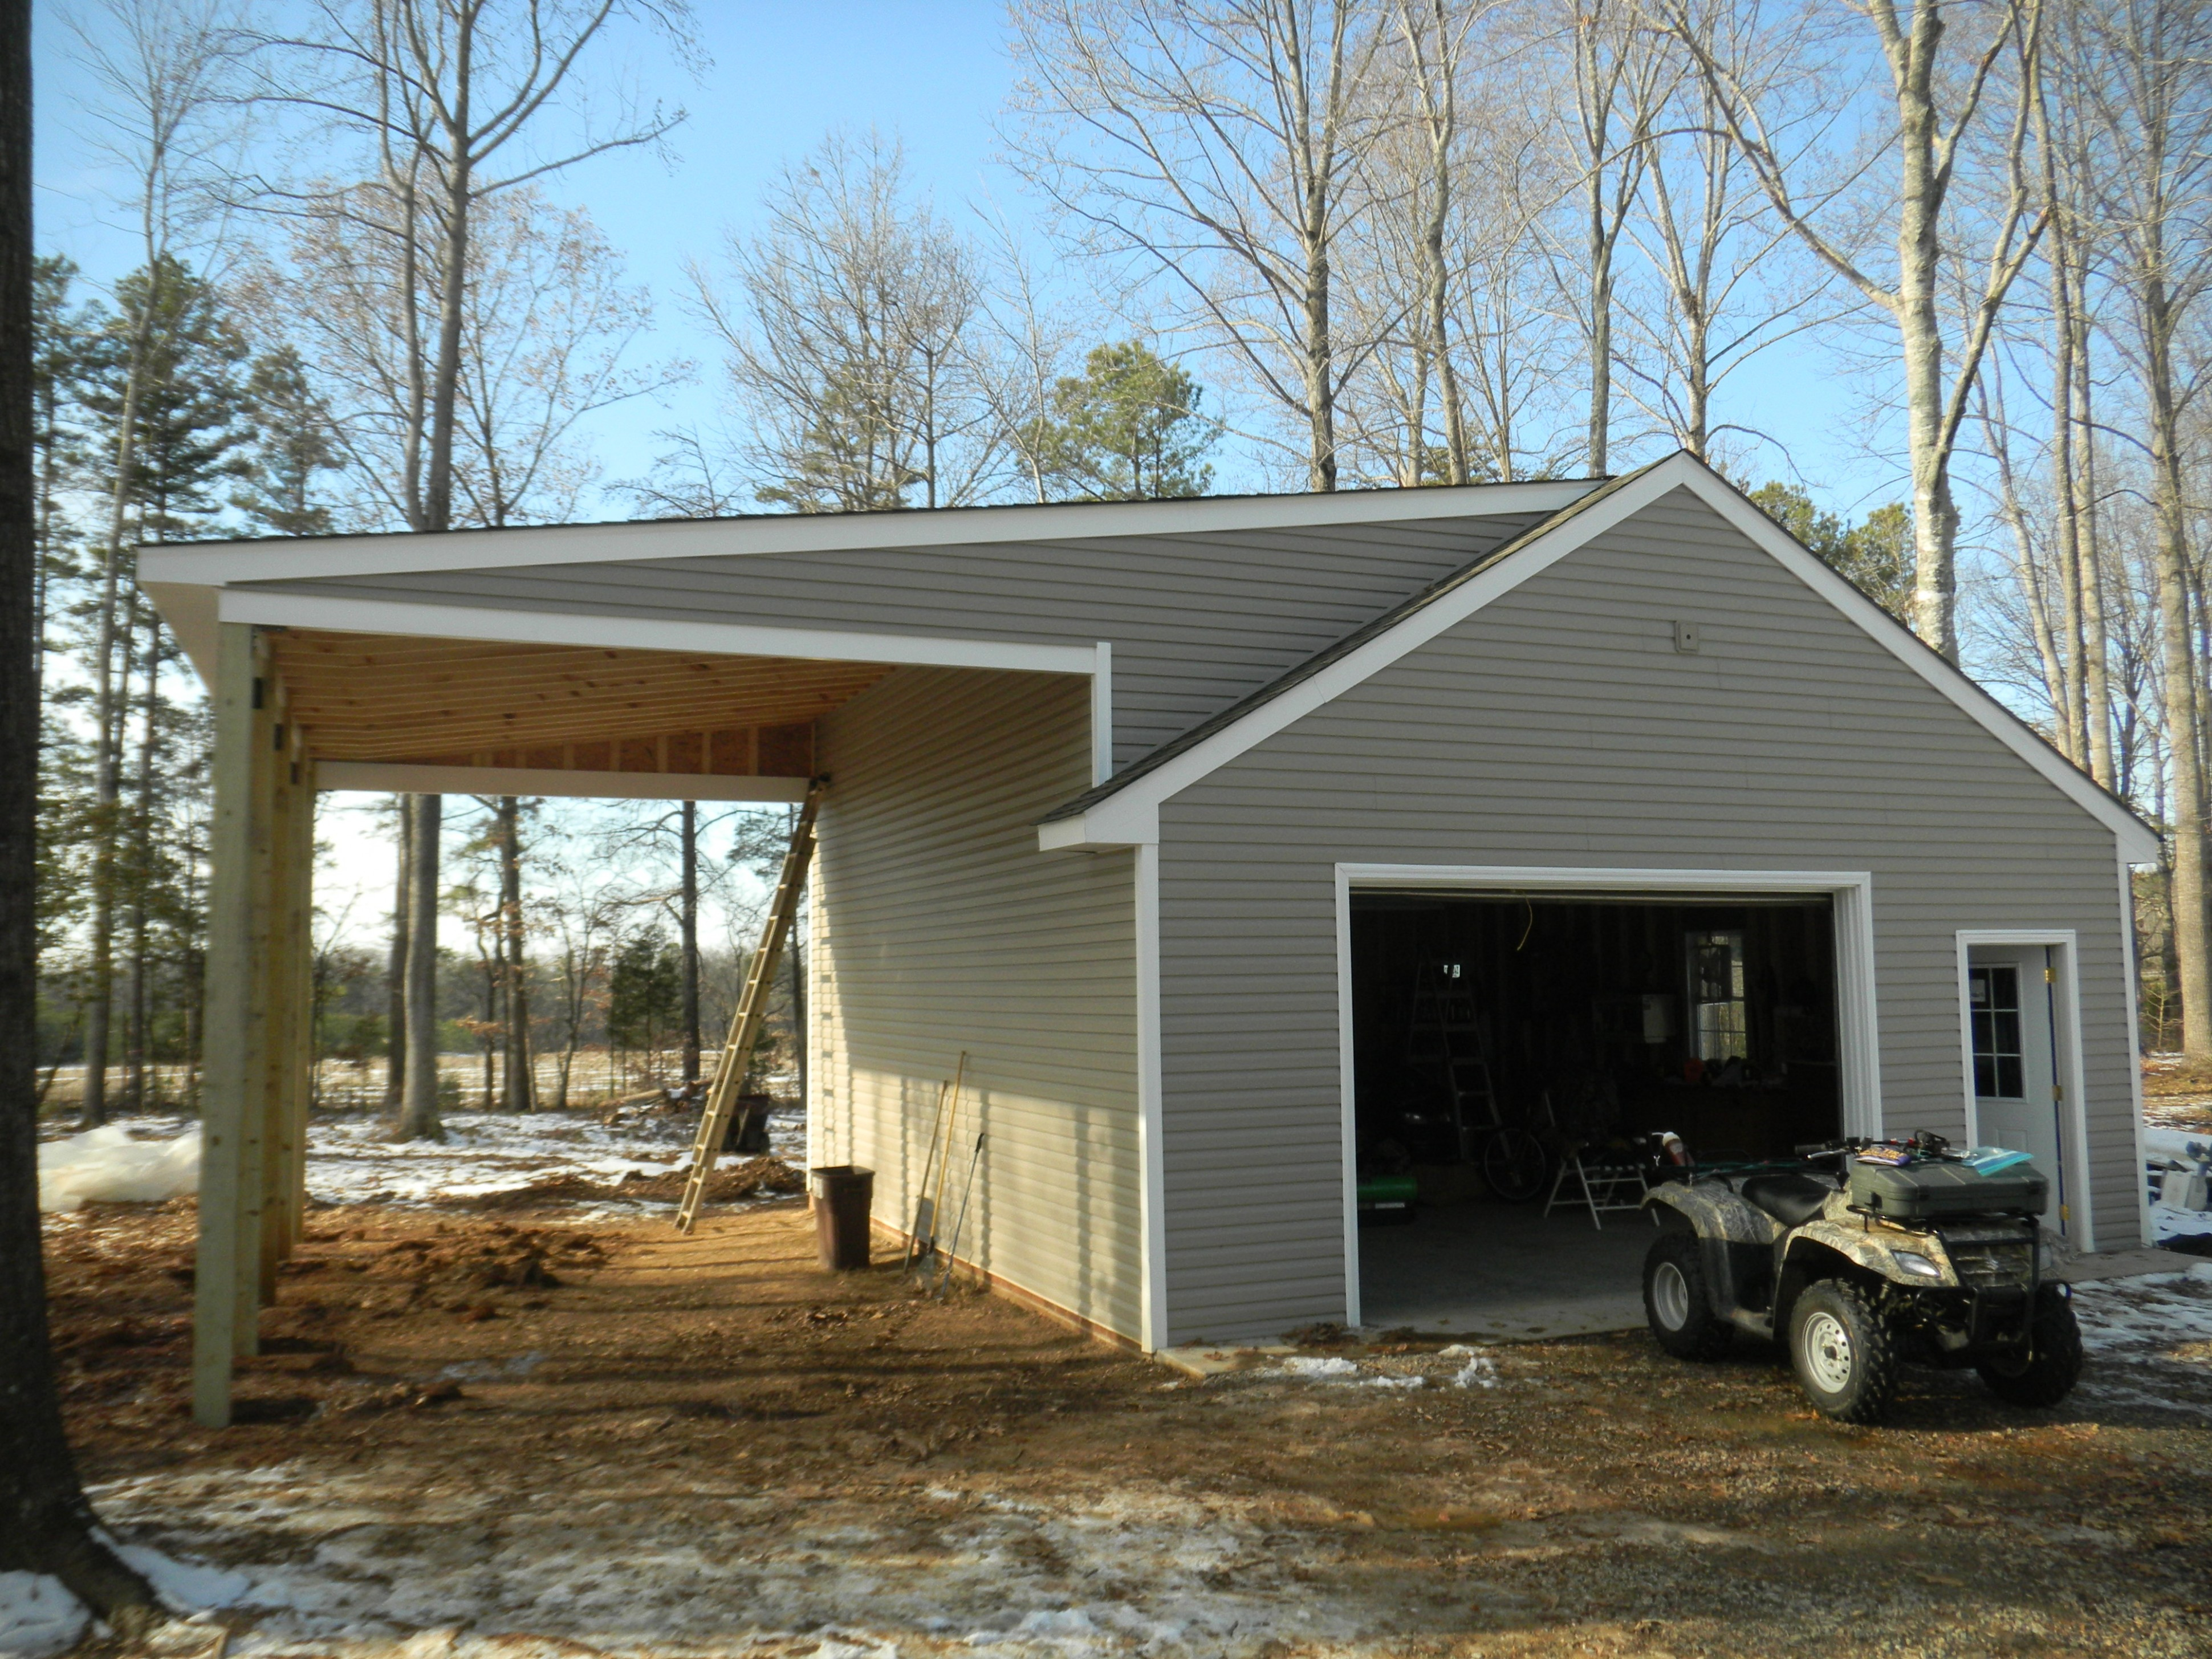 14 New Thoughts About Carport Meaning That Will Turn Your World Upside Down | carport meaning